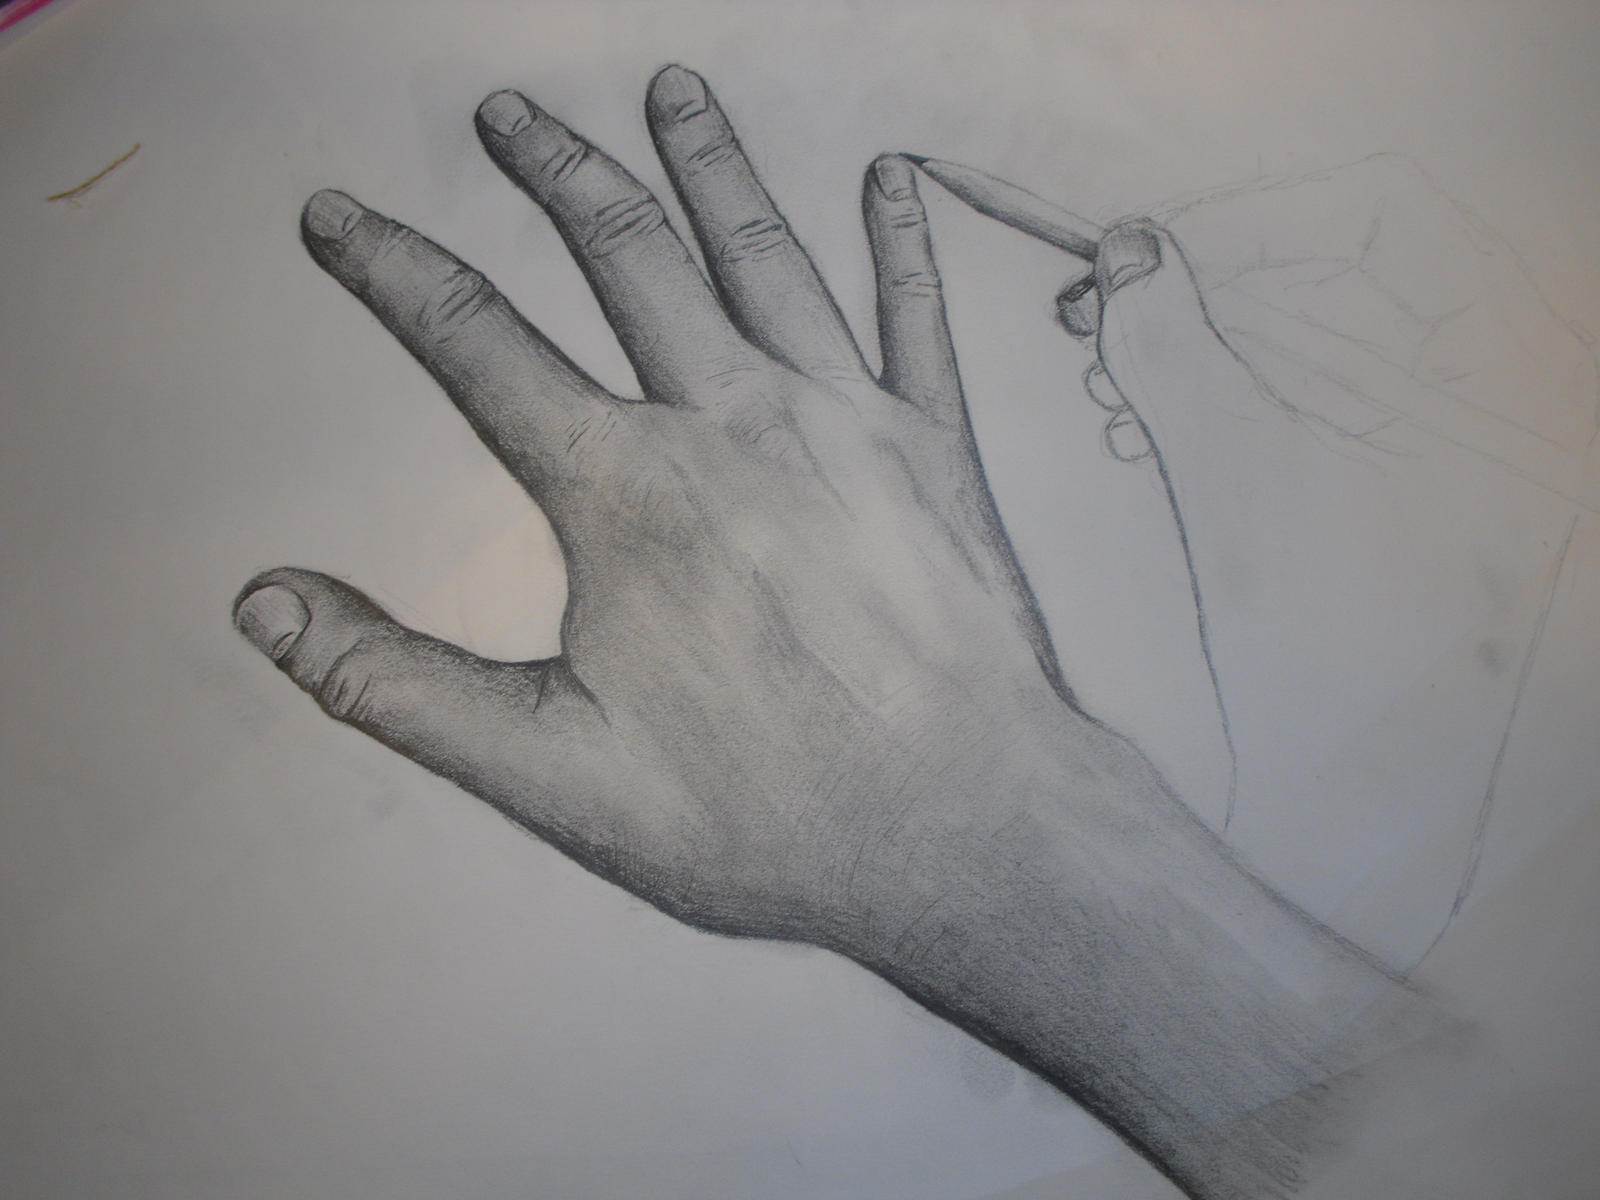 3d Line Drawings : Hand getting drawn by line art theonlyjwh t on deviantart